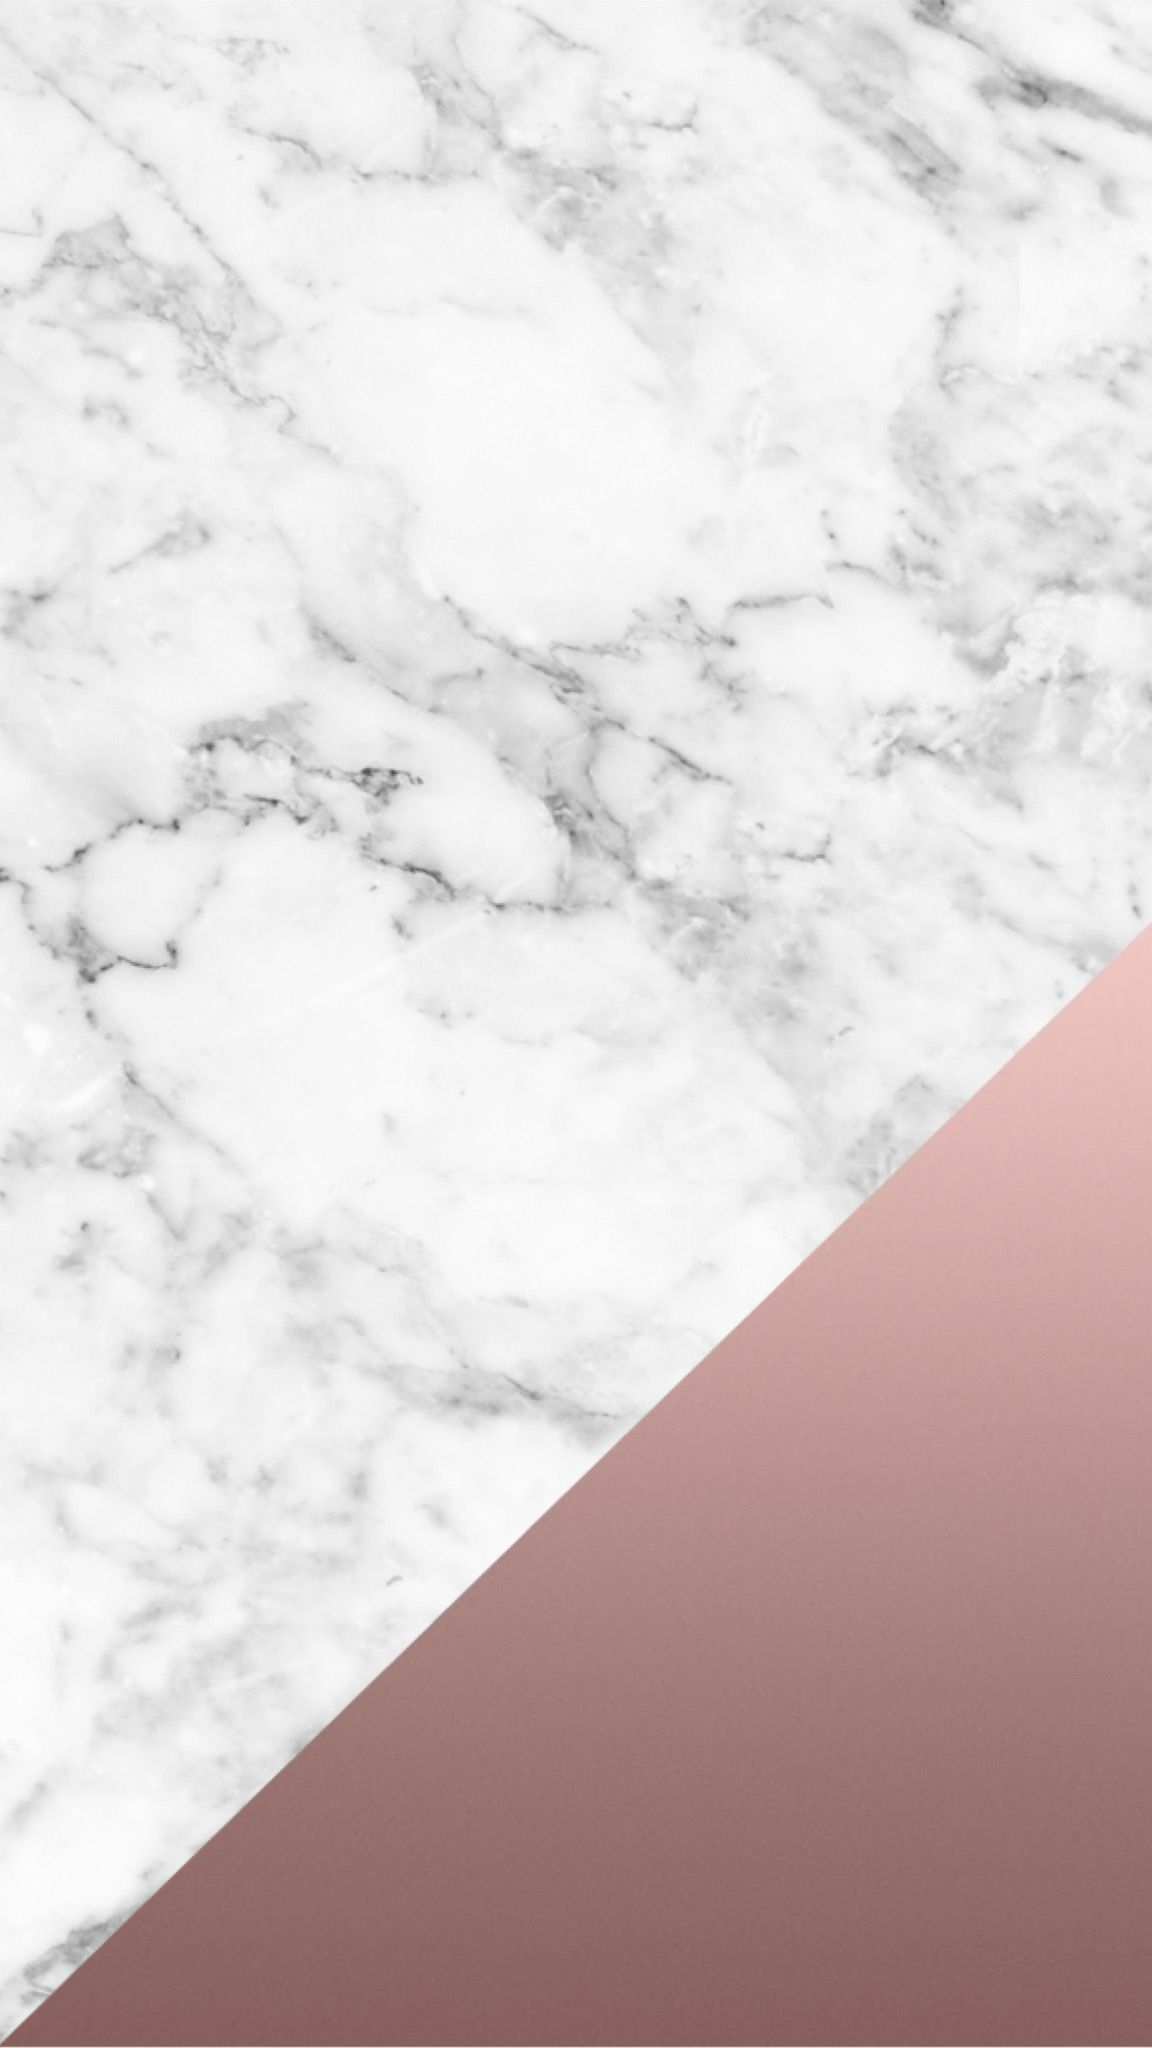 Rose Gold Marble Wallpaper Wallpaper Iphone Latar Belakang Wallpaper Ponsel